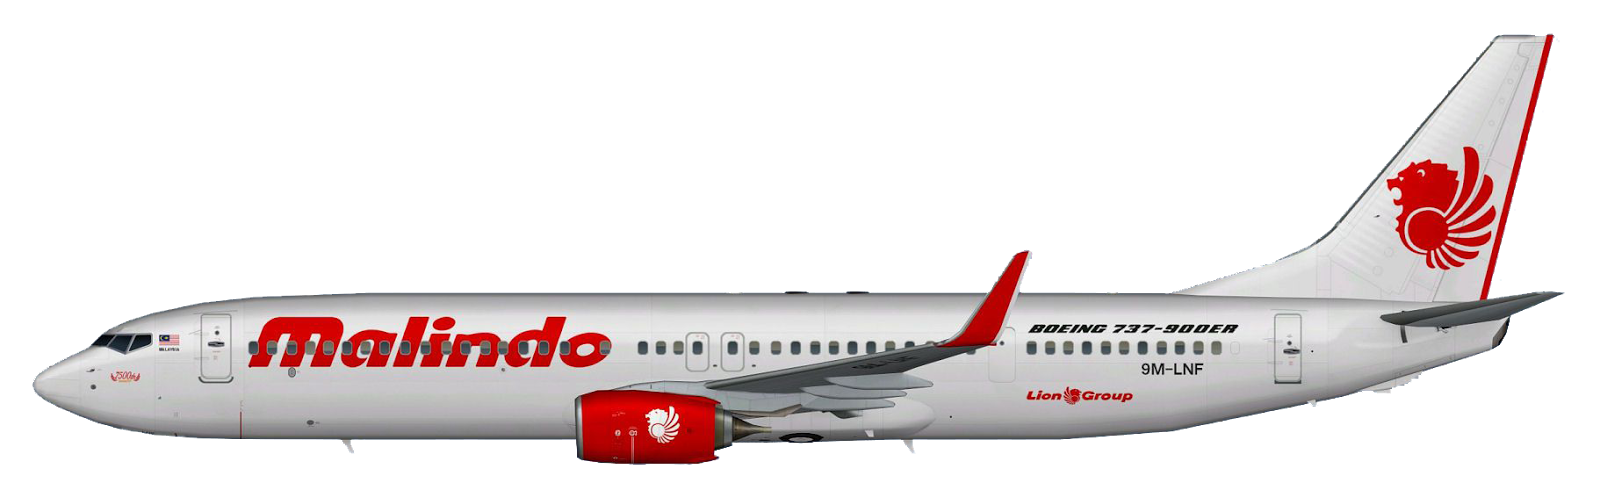 Malindo logo transparent images. Air png image picture library